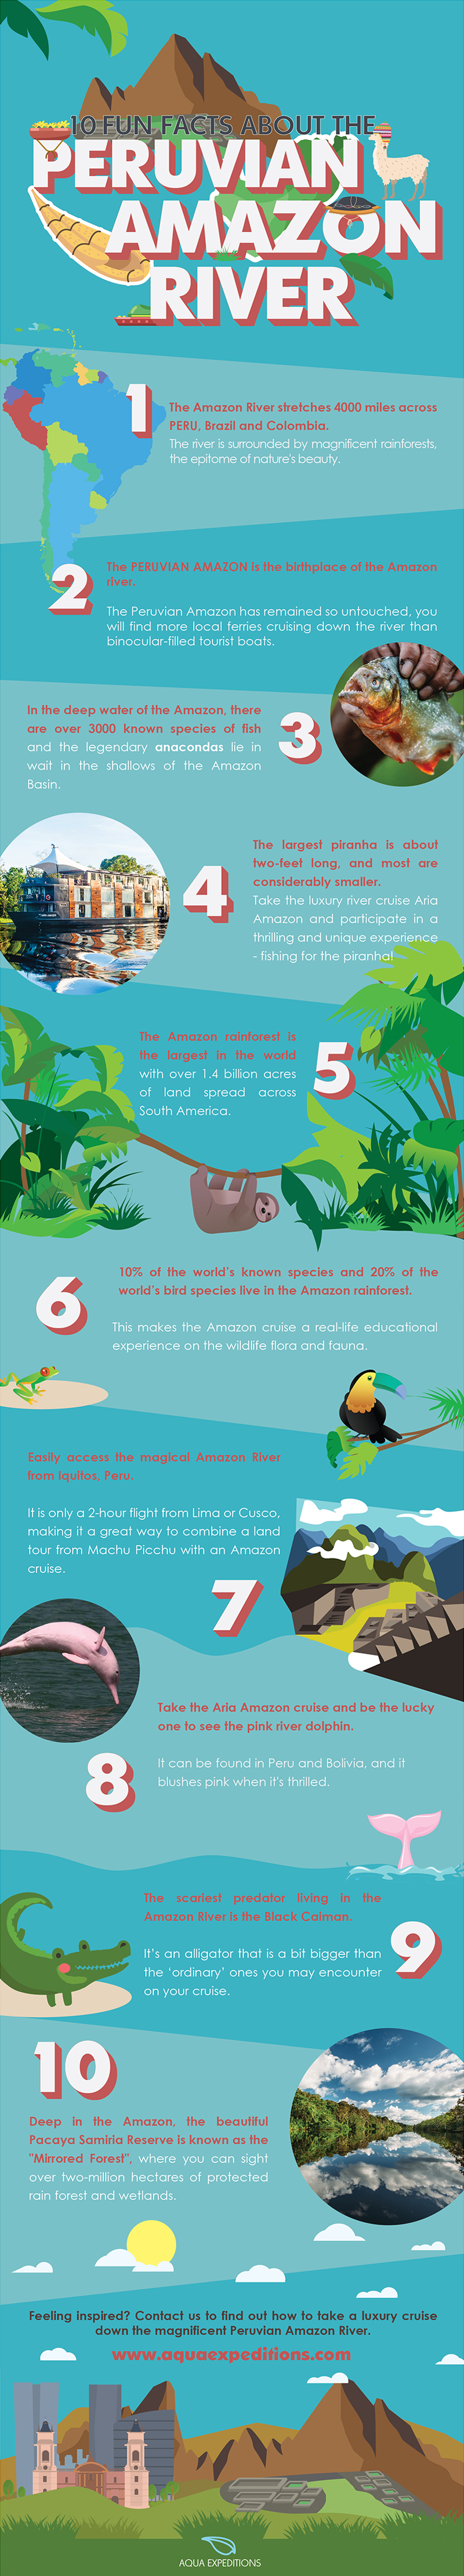 Peruvian Amazon River infographic